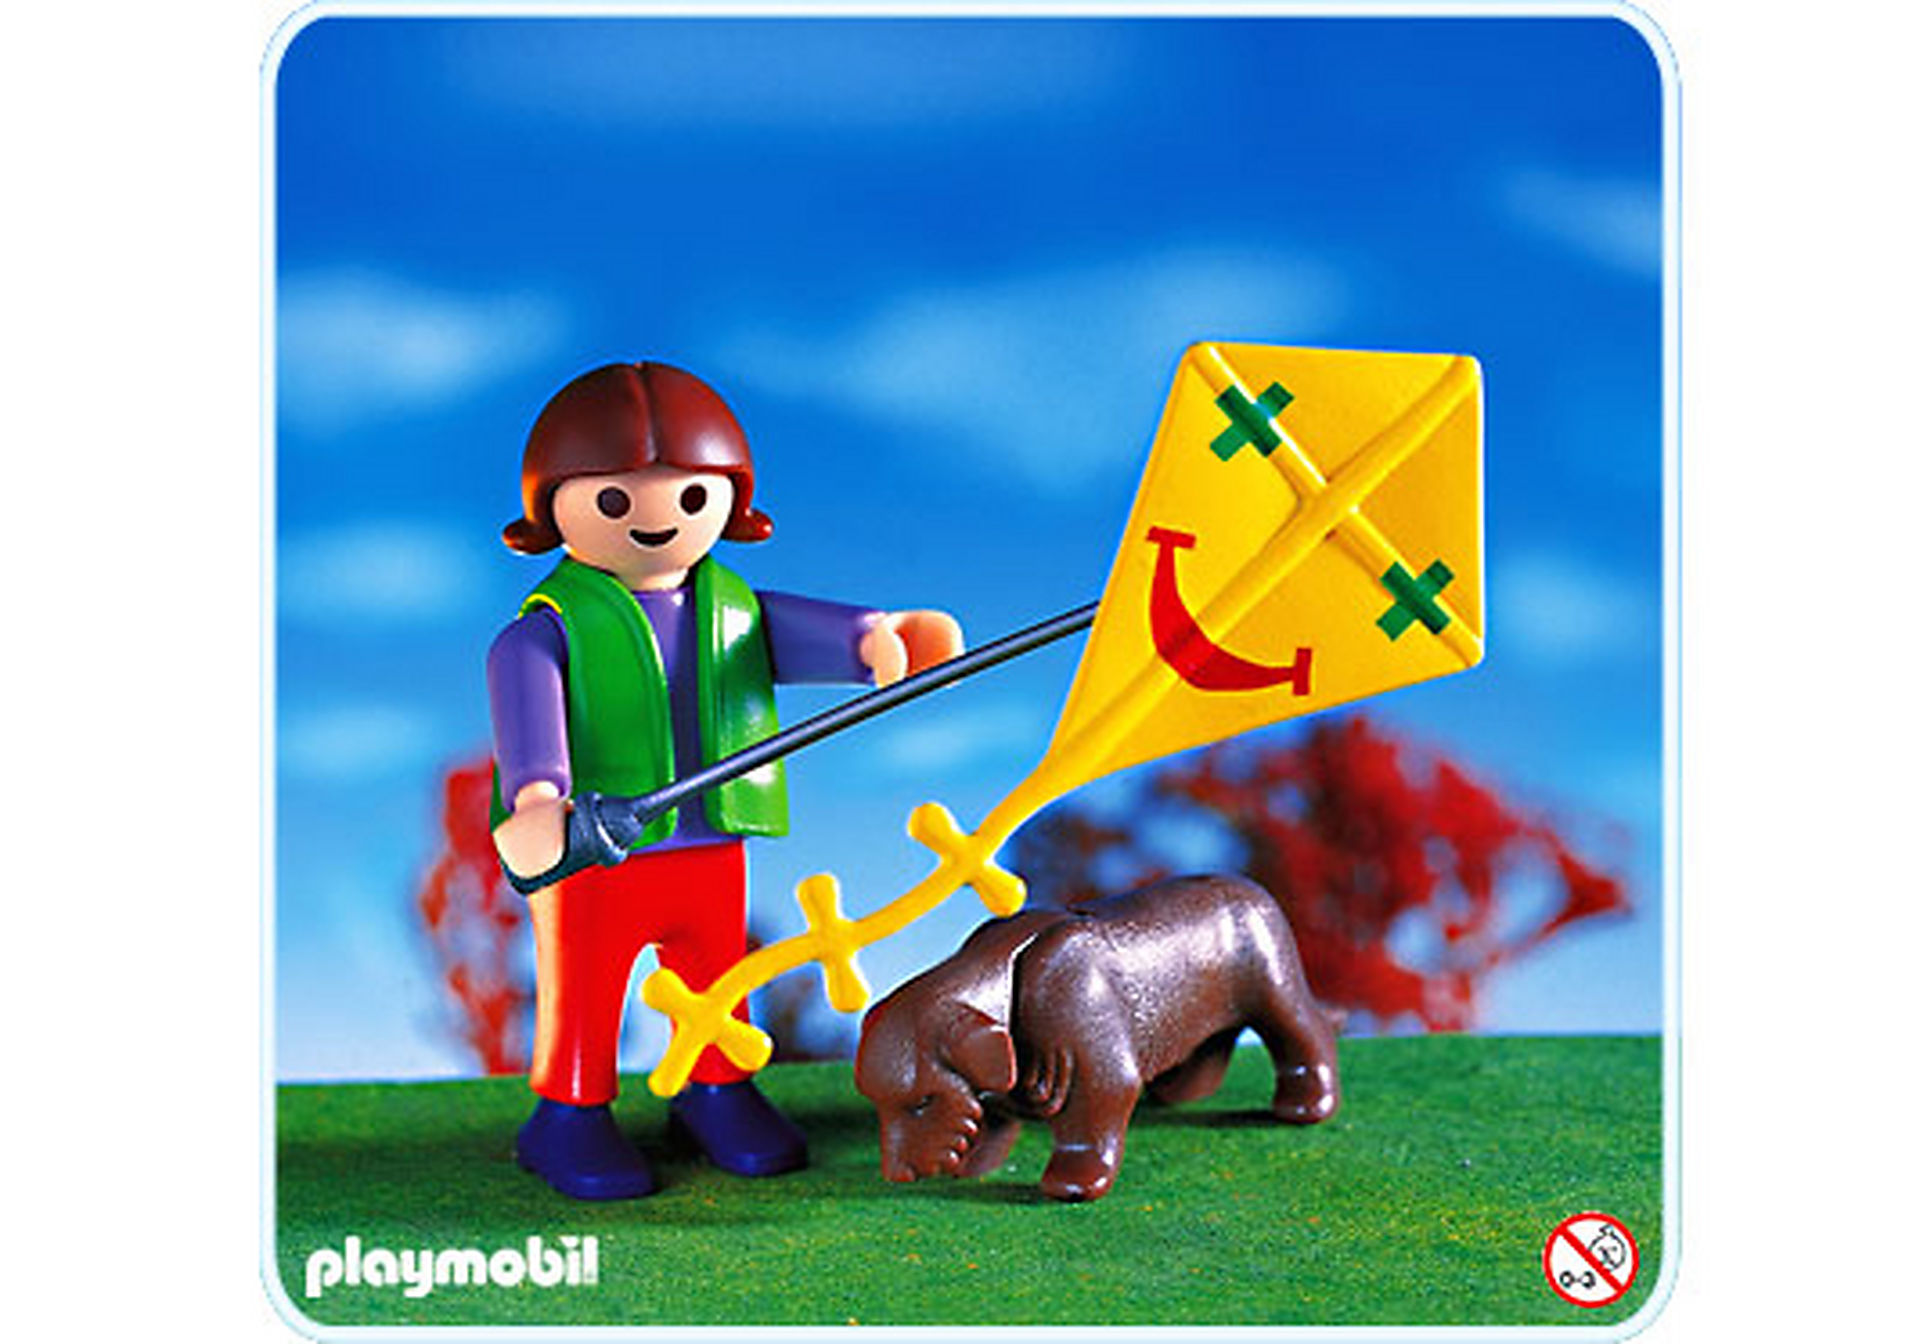 http://media.playmobil.com/i/playmobil/4543-A_product_detail/Petite fille / cerf volant